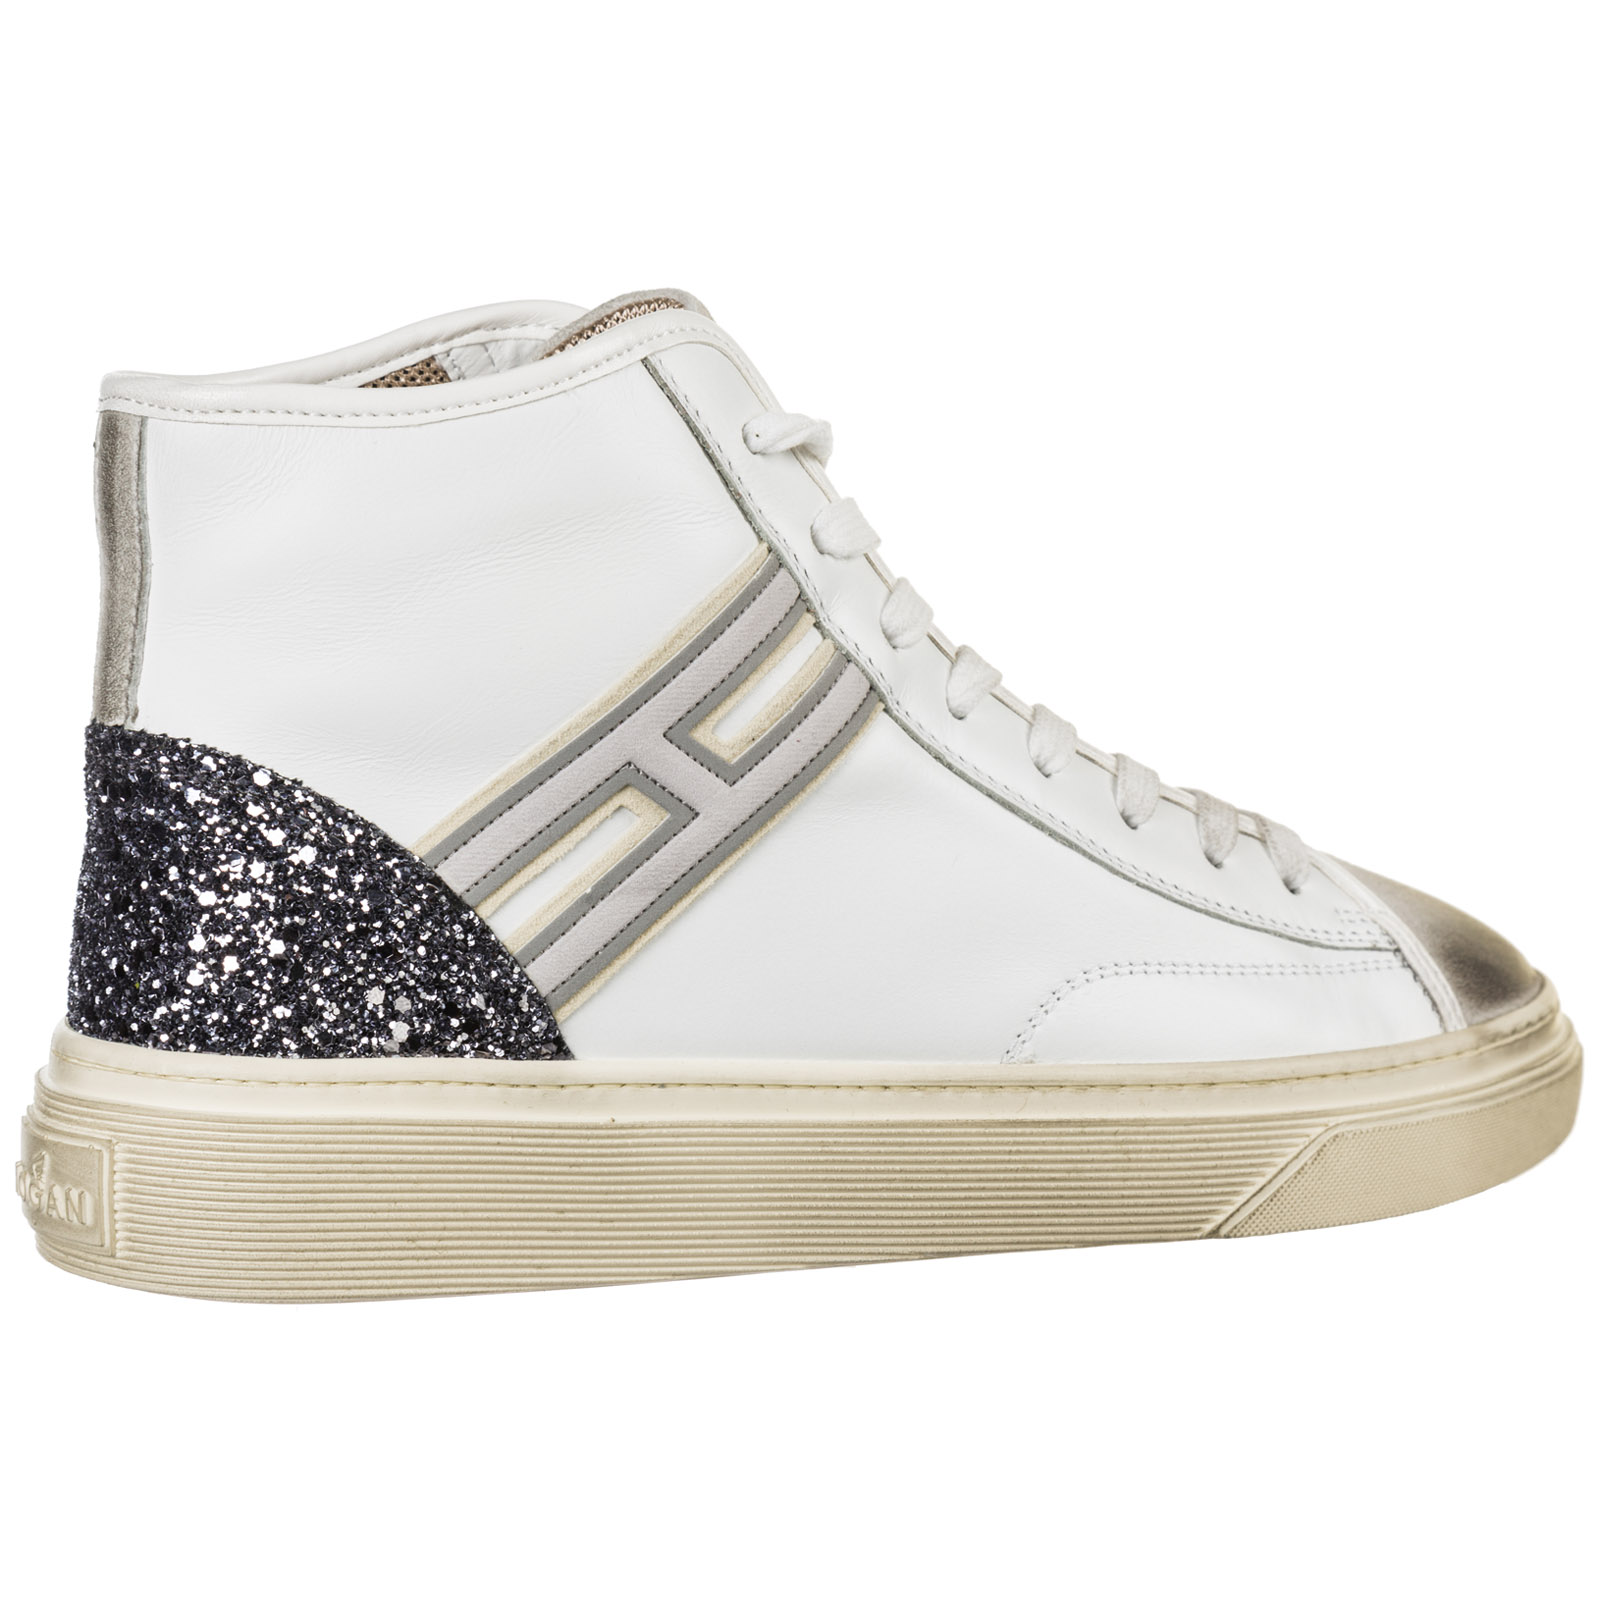 sale online cheap prices undefeated x High-top sneakers Hogan h342 hxw3420j240hsb0zpm bianco | FRMODA.com